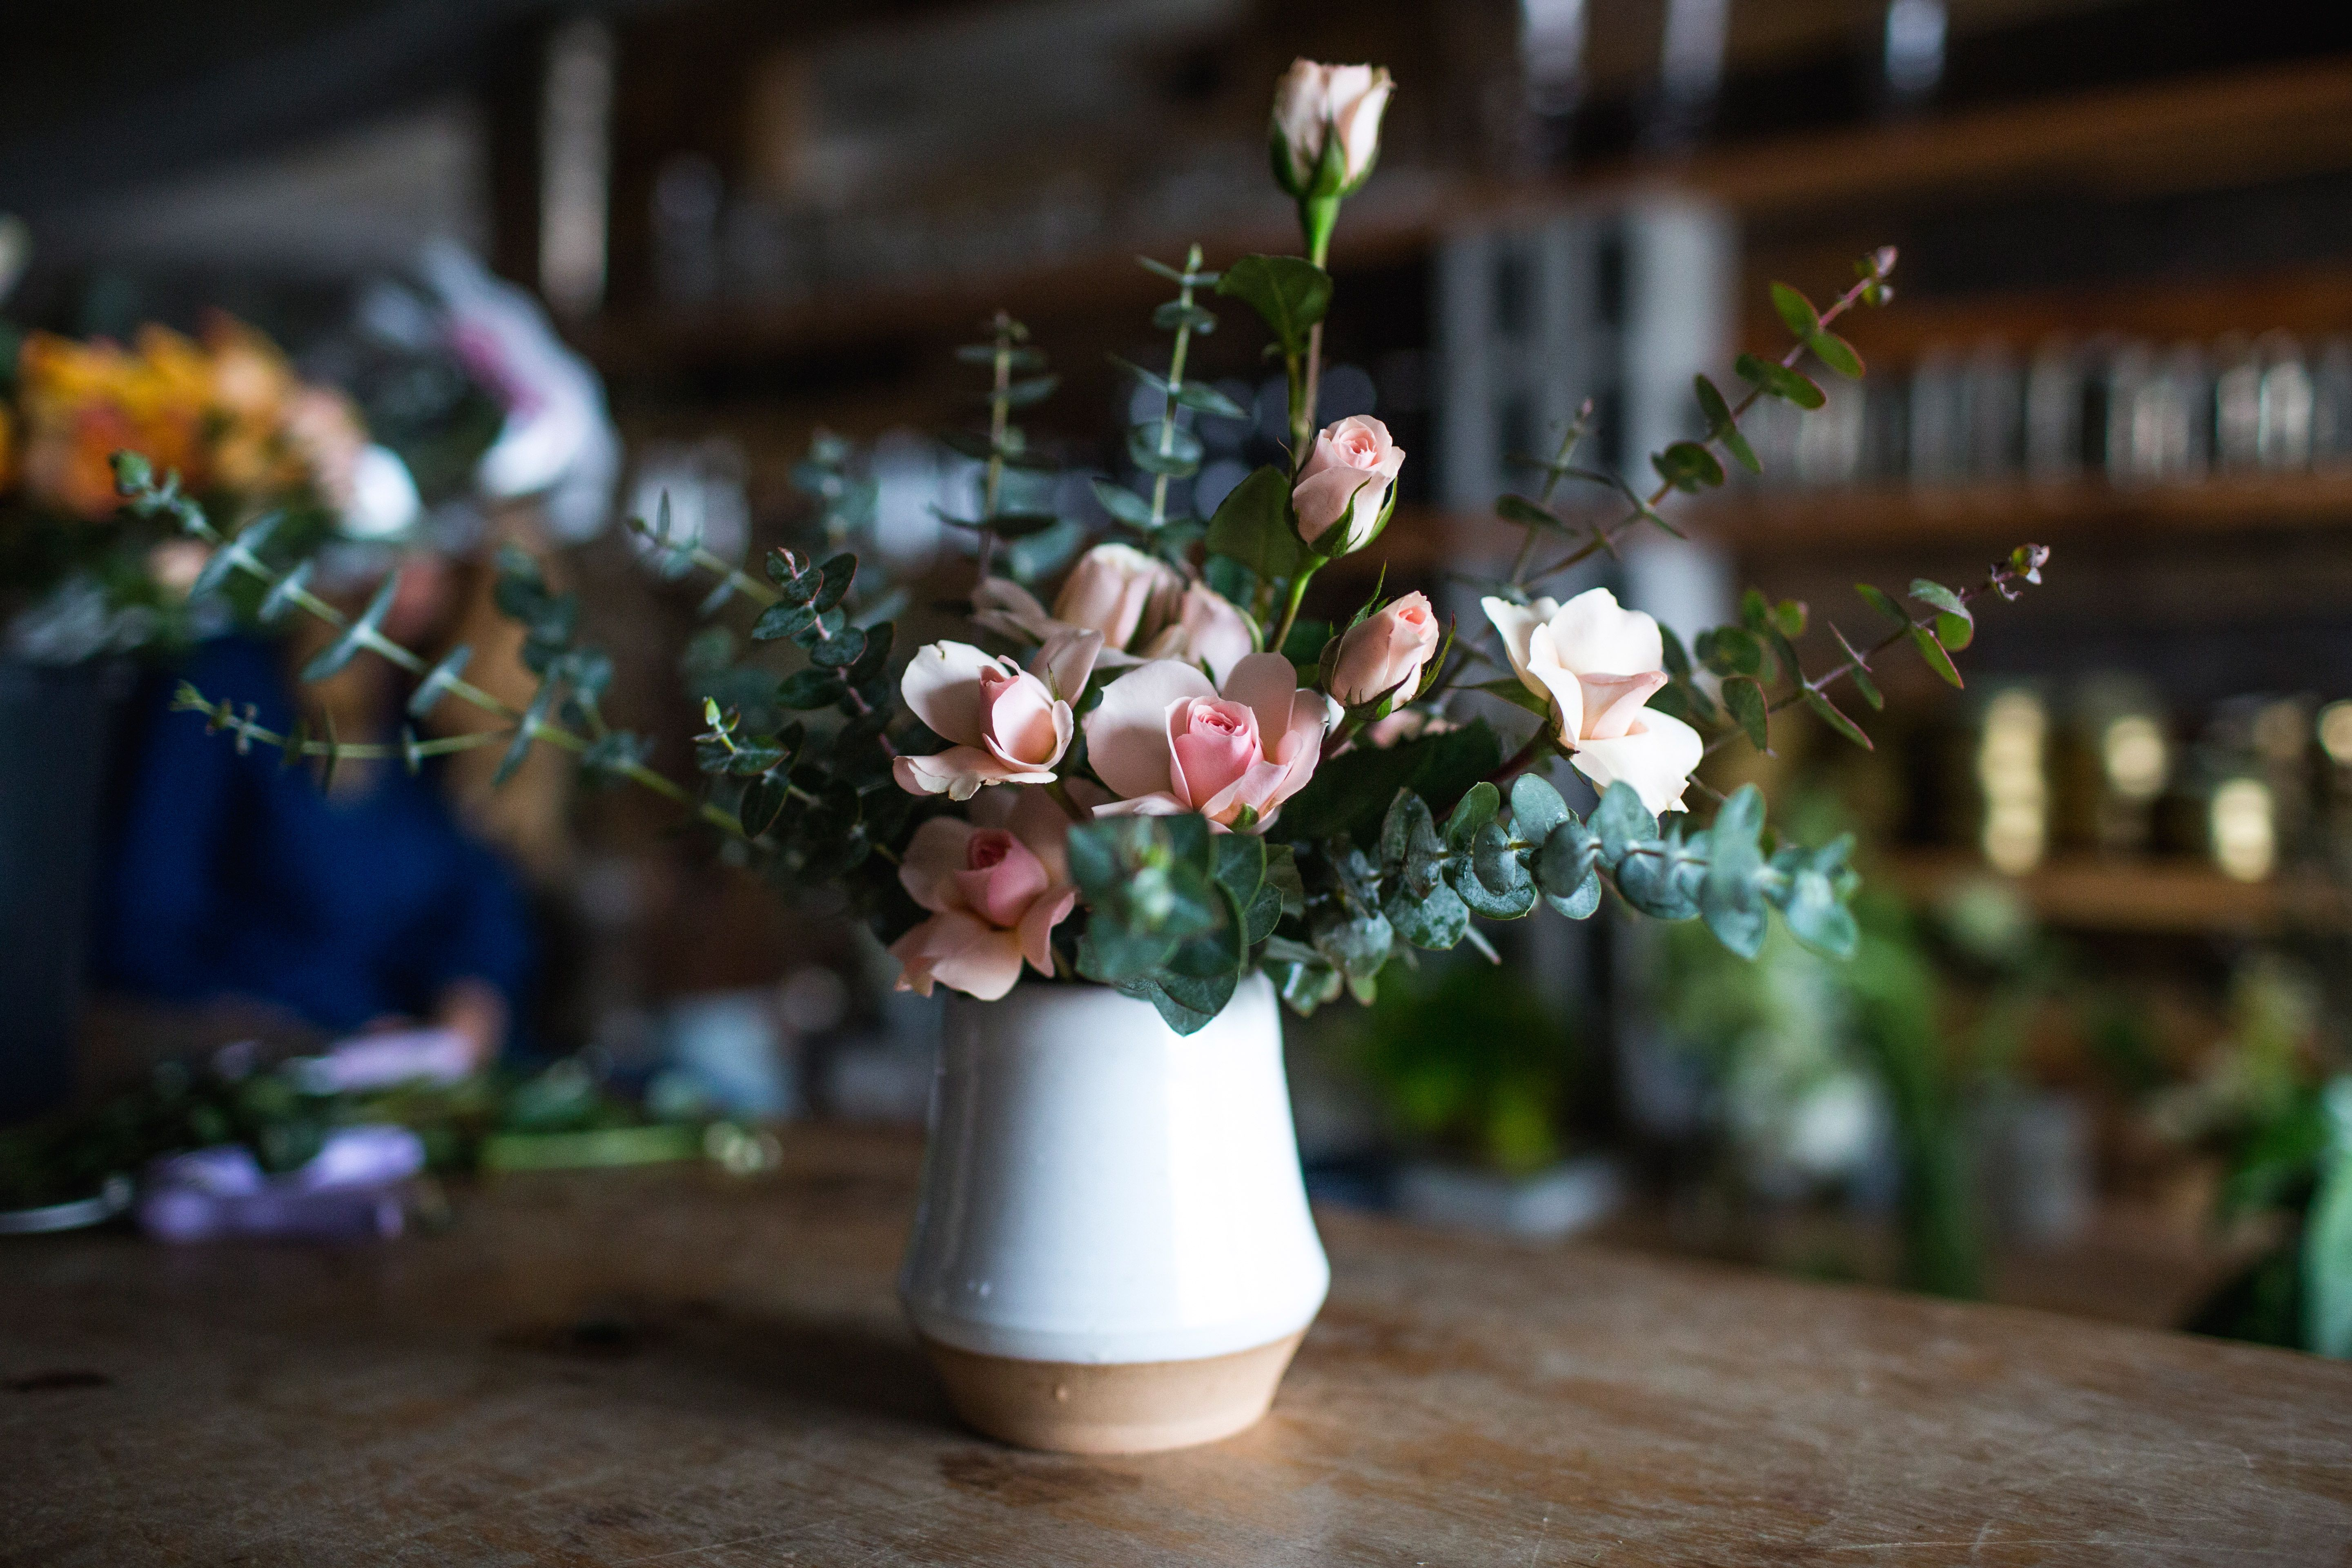 How to Make a Stunning Bouquet with Supermarket Flowers